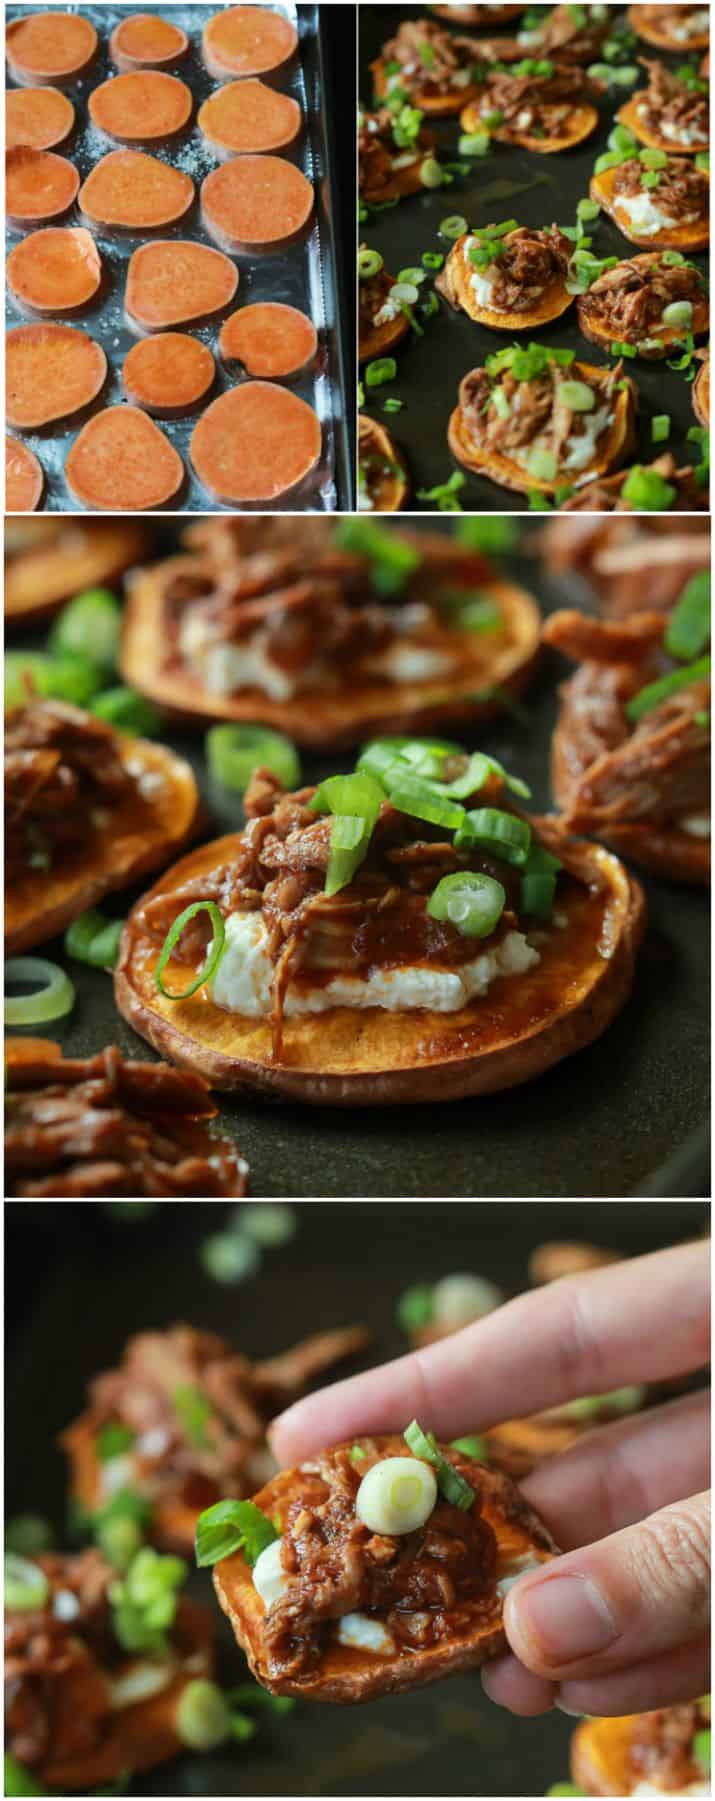 BBQ Pulled Pork Sweet Potato Bites are sure to be a family favorite. Topped with creamy whipped goat cheese and moist BBQ Pulled Pork with a few secret ingredients - you'll be addicted after one! | joyfulhealthyeats.com #appetizer #gameday #recipes